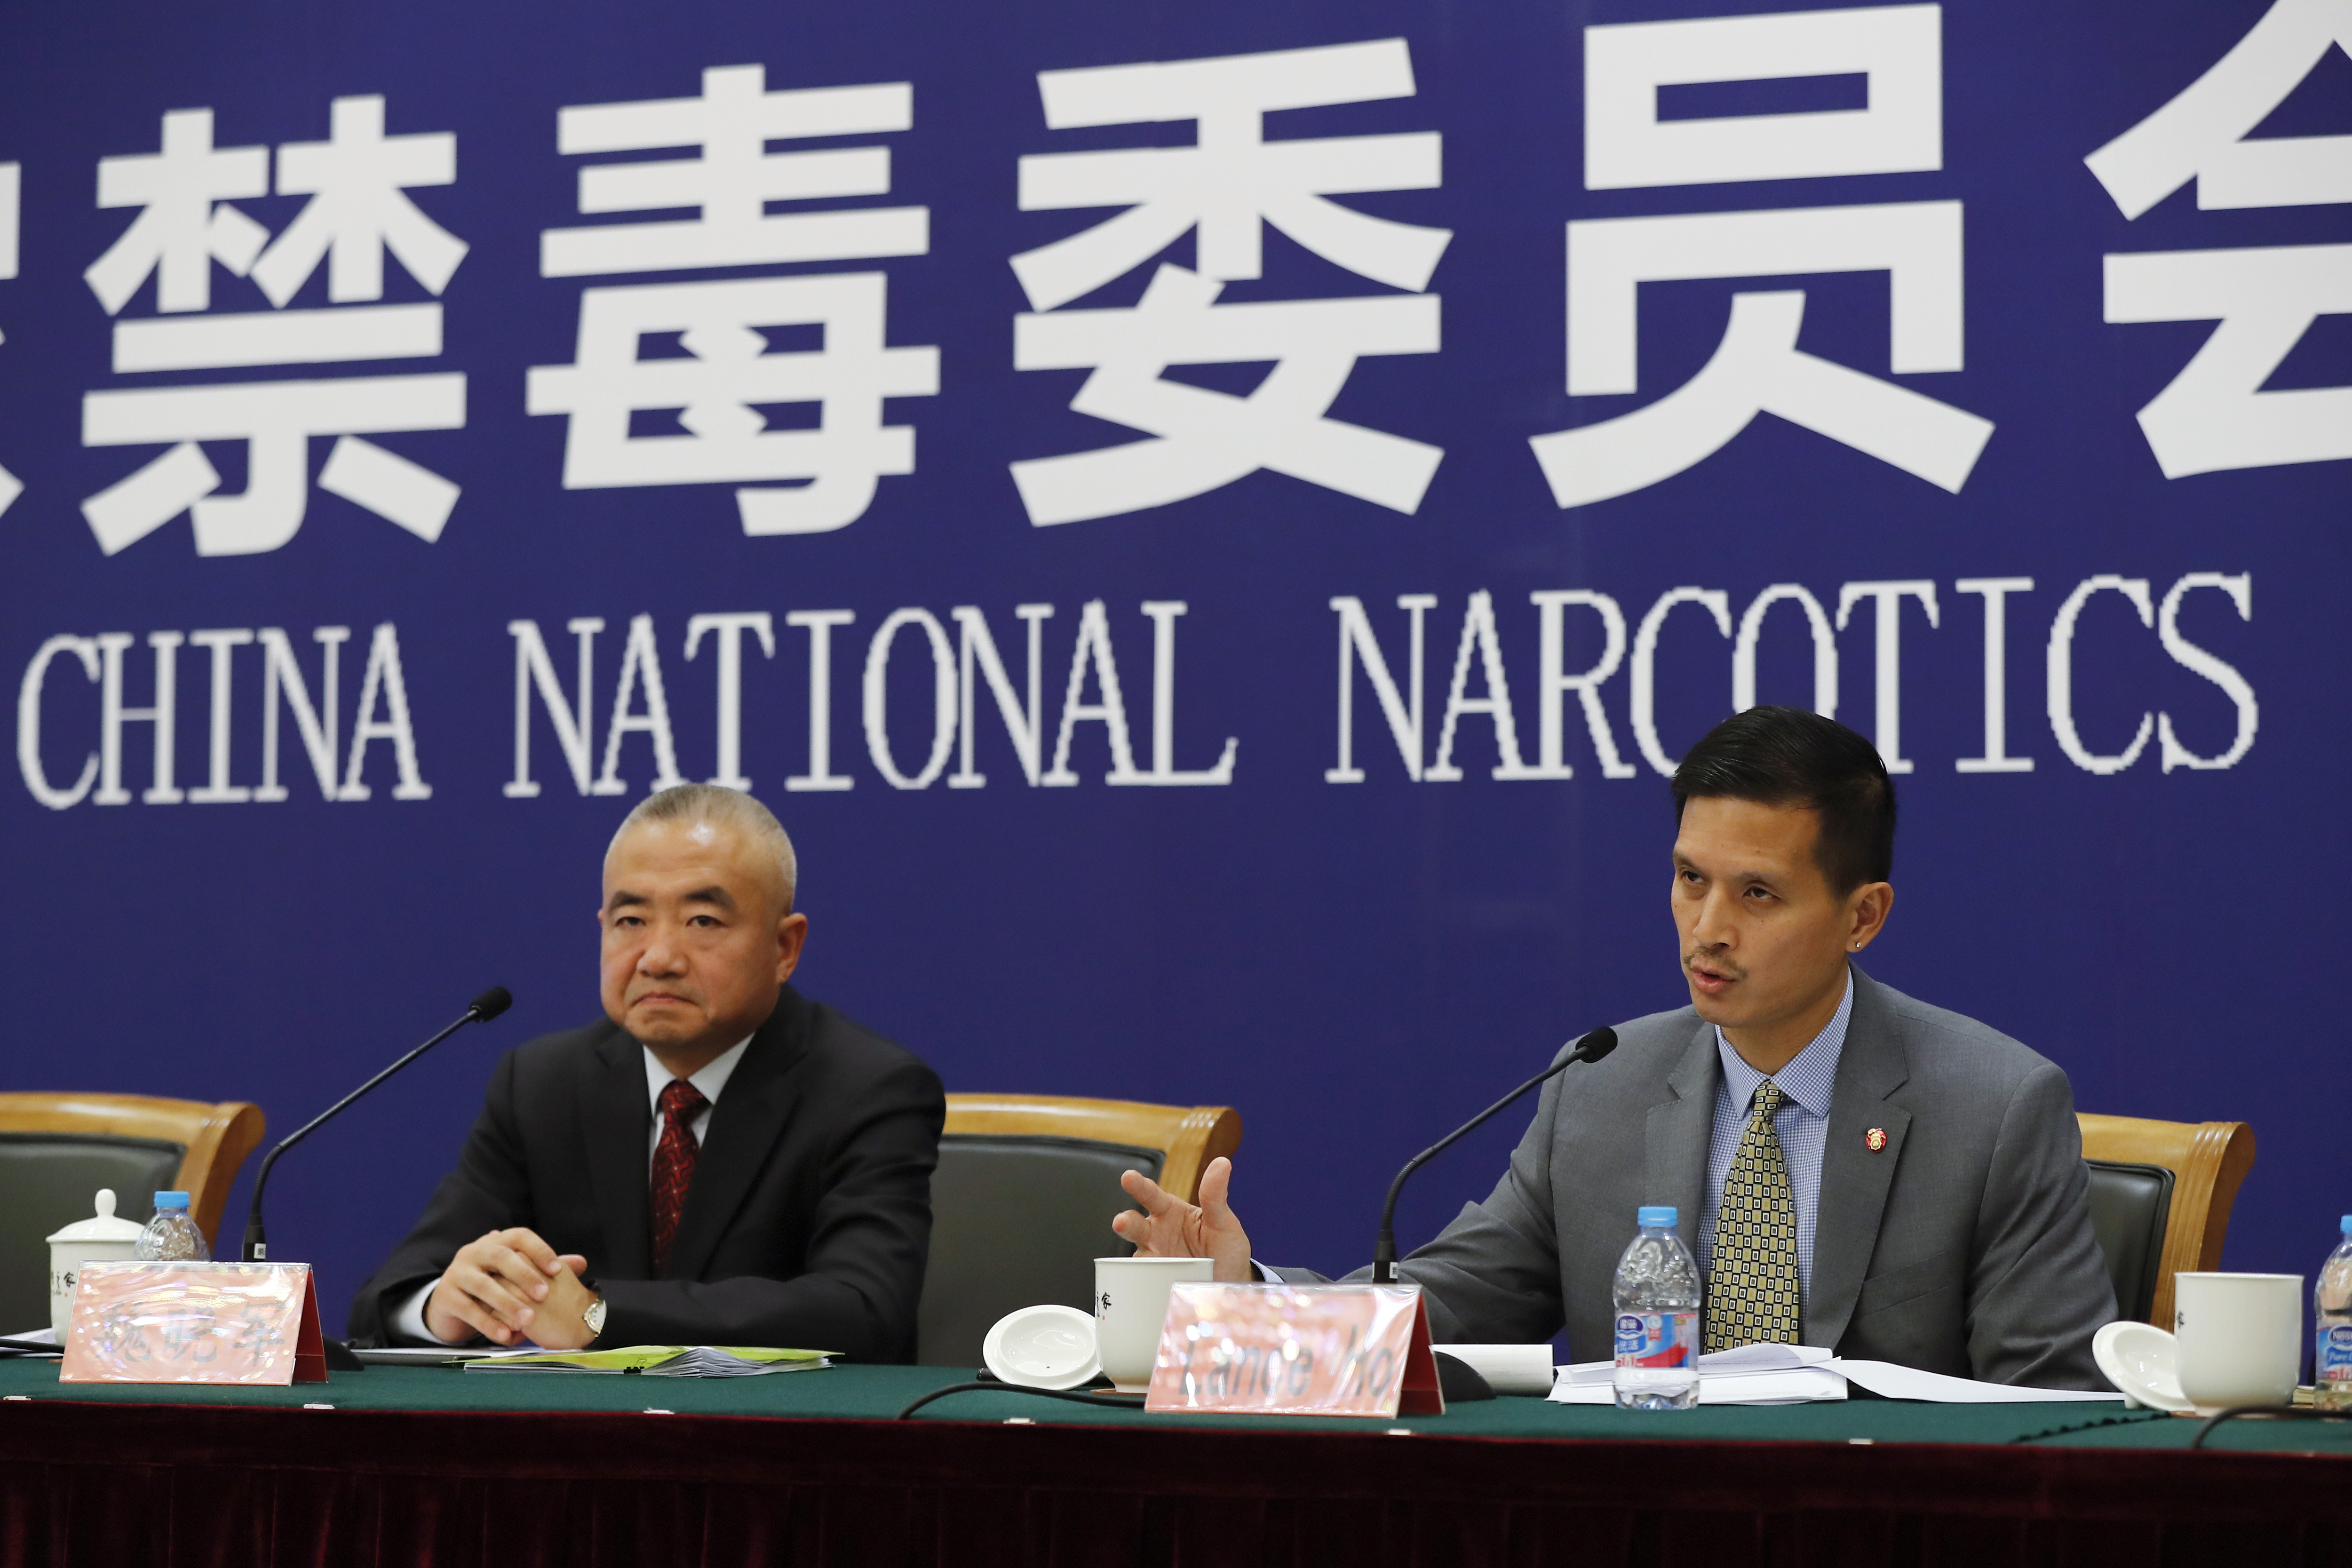 U.S. Drug Enforcement Administration's representative in Beijing, Lance Ho, right, speaks next to Wei Xiaojun, deputy director-general of the Narcotics Control Bureau of the Ministry of Public Security during a press conference in Beijing, Nov. 3, 20...